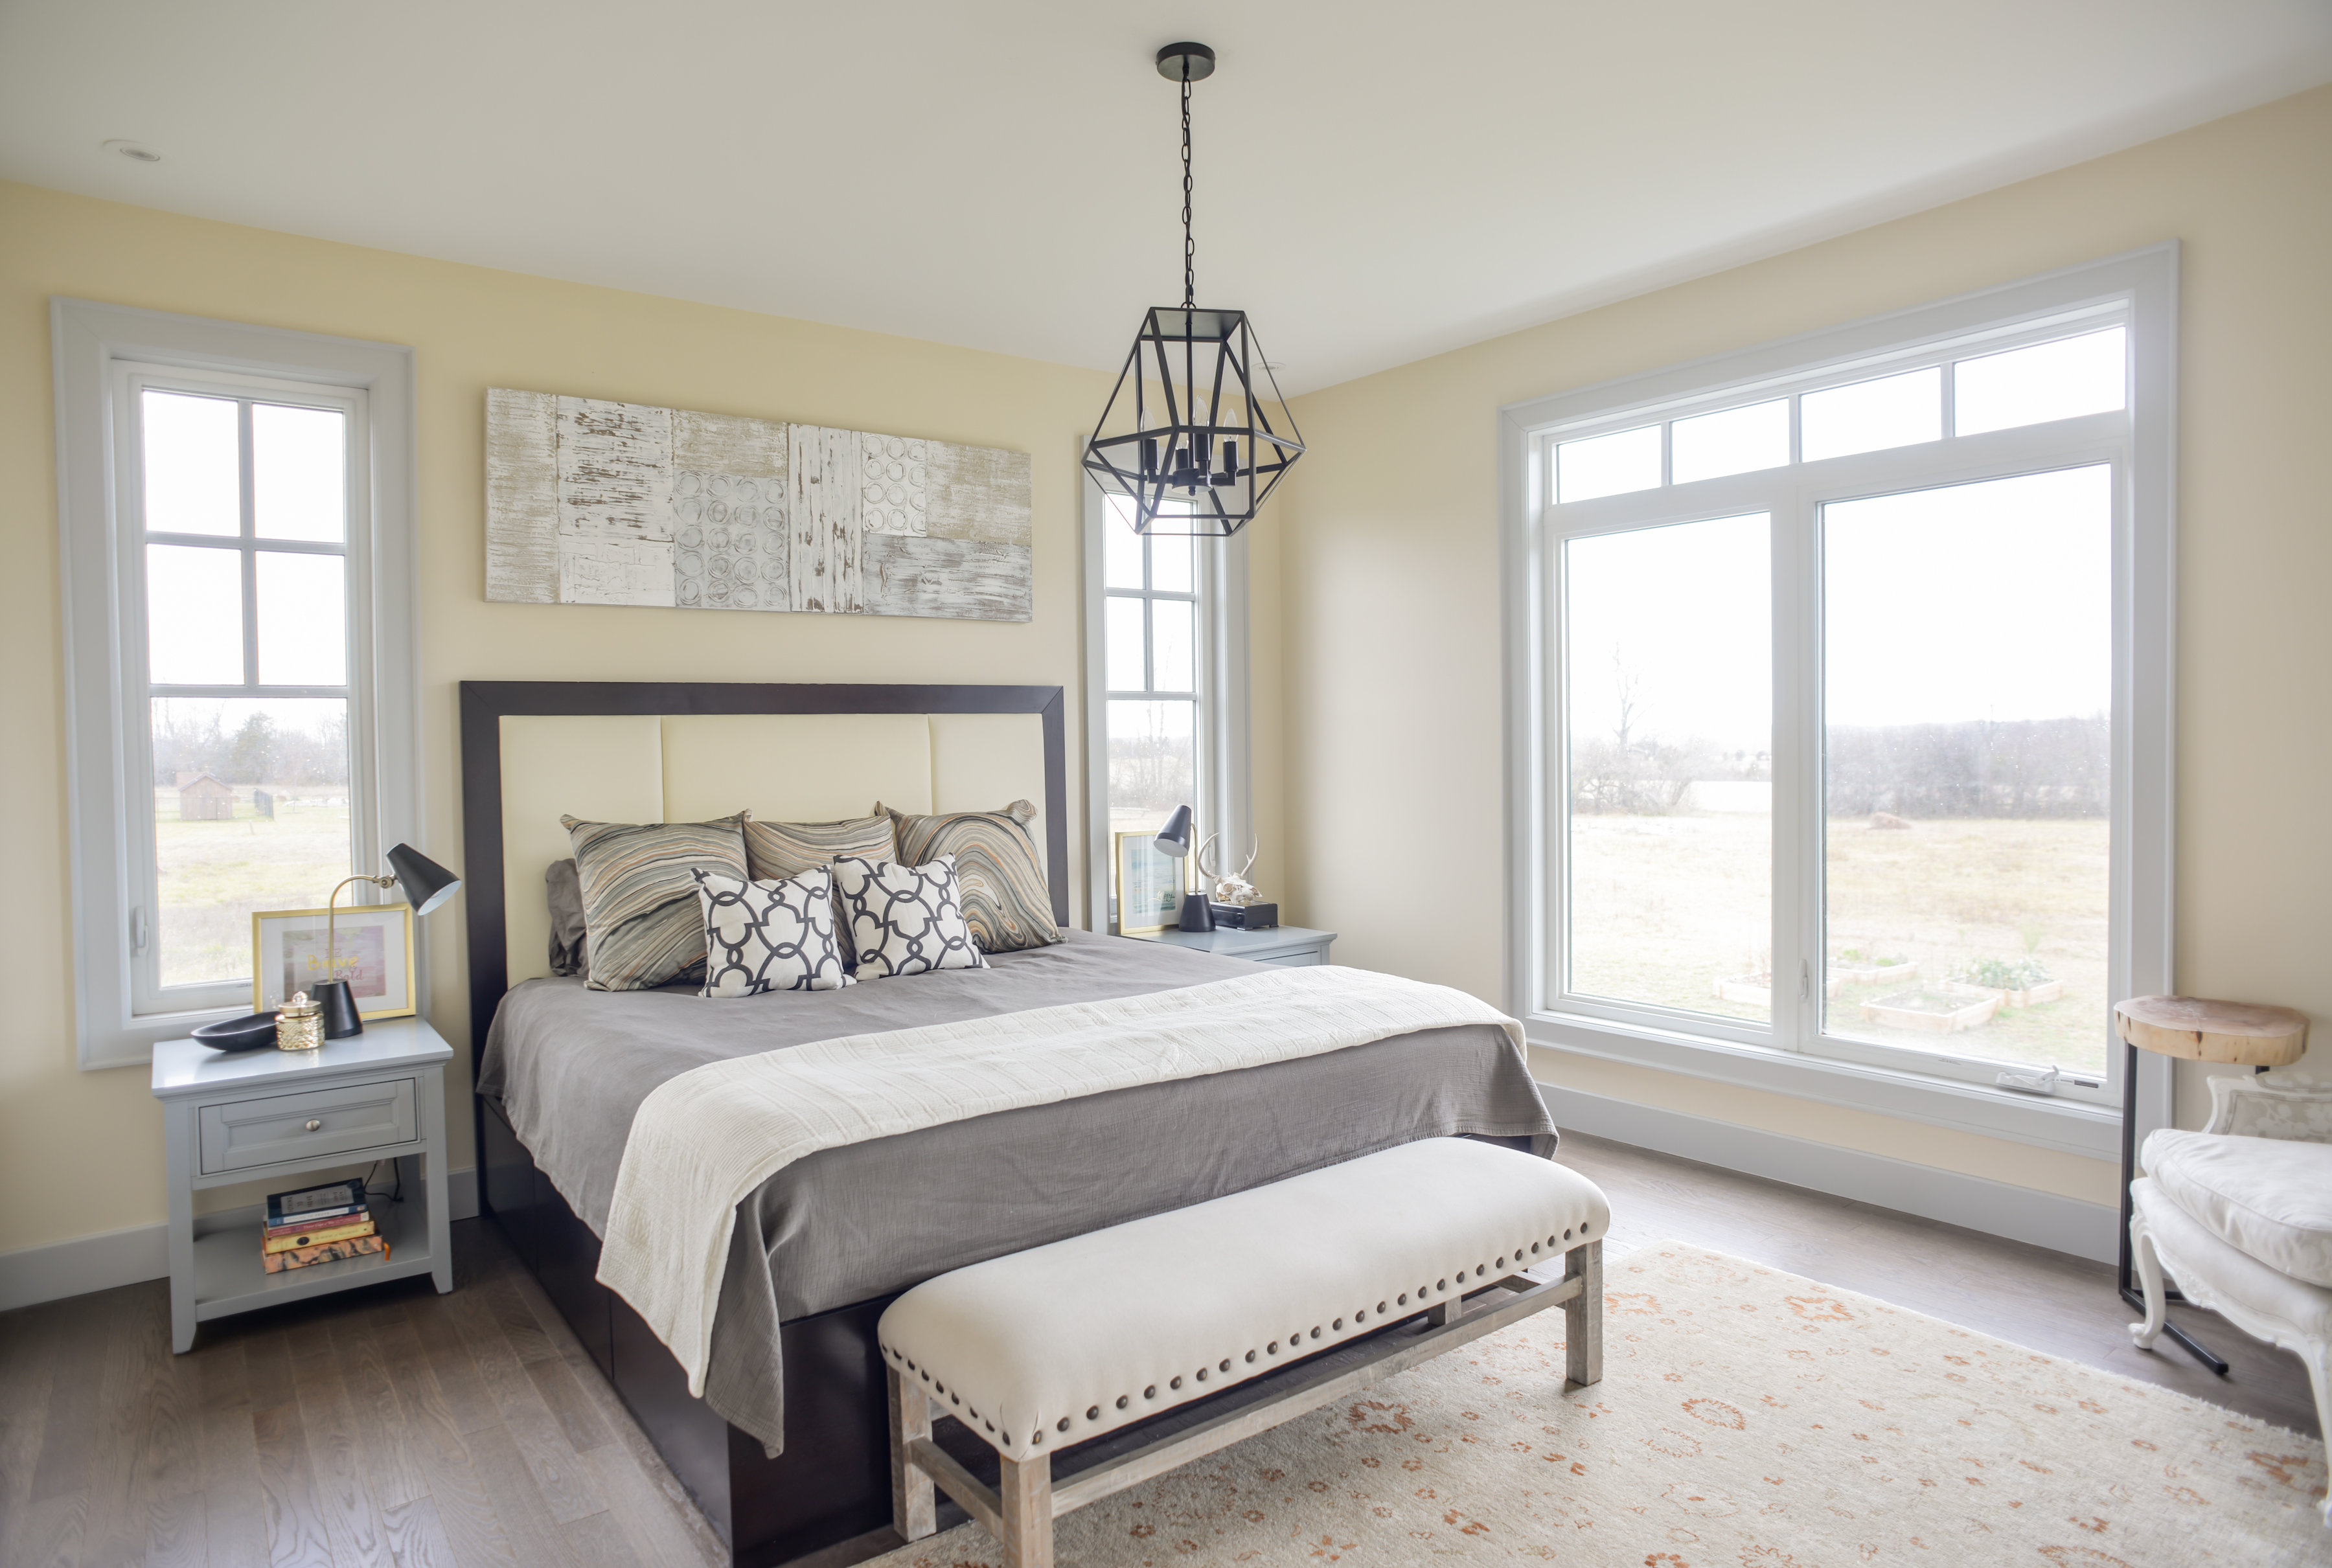 design bedroom decor interior photo ideas bedrooms contemporary decorating gallery styles for